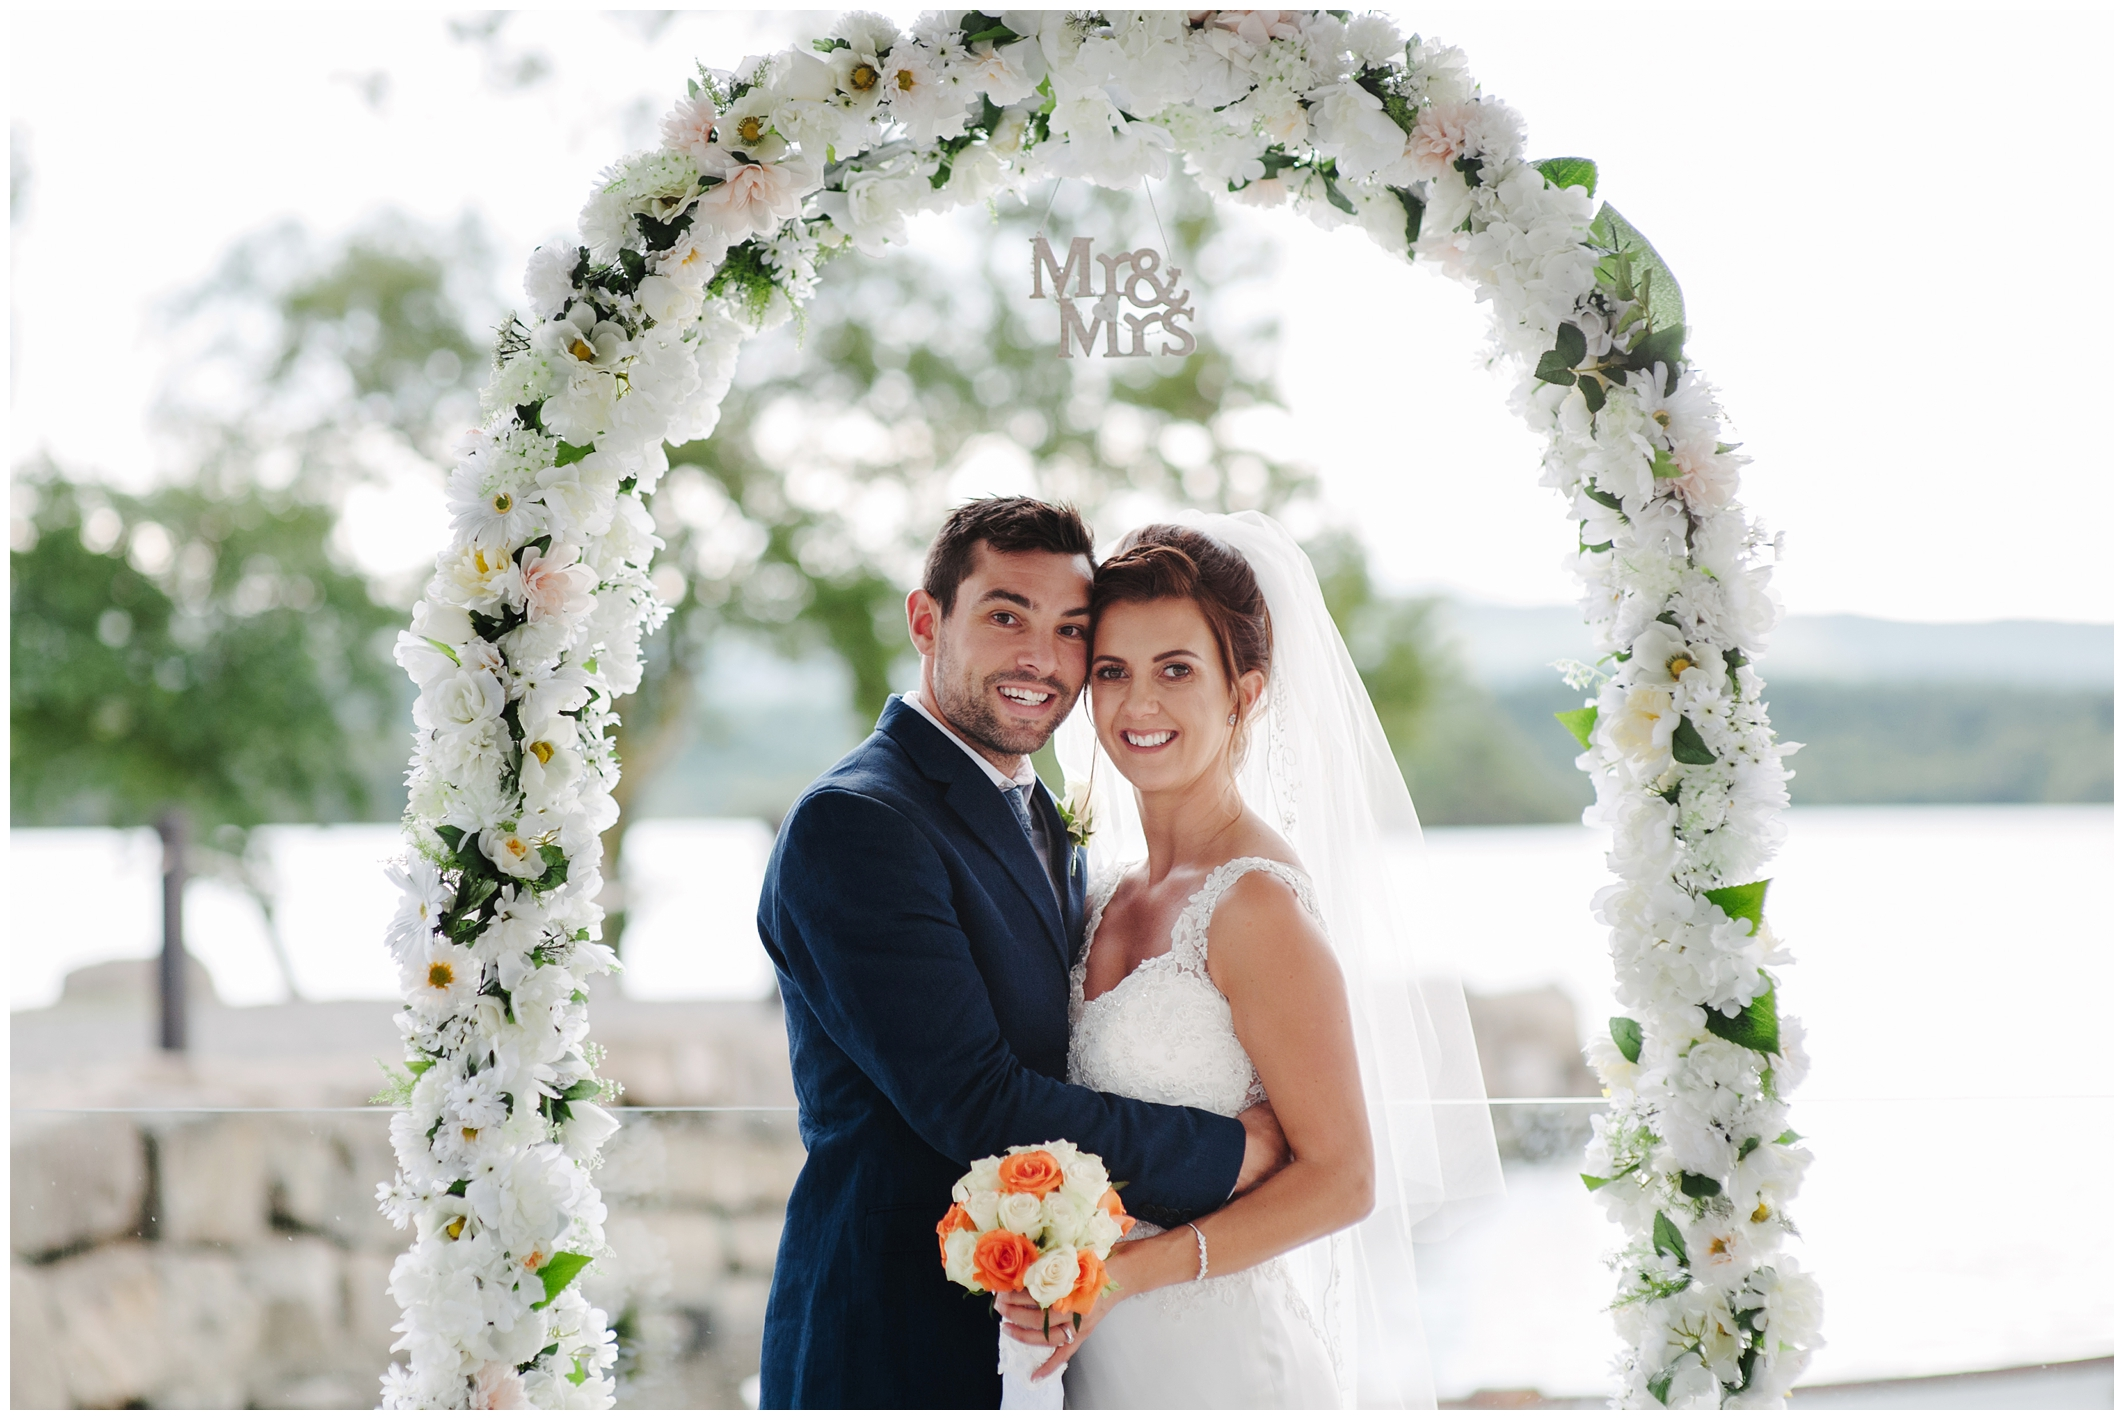 Lynsey_Andy_Rossharbour_Fermanagh_wedding_jude_browne_photography_0092.jpg